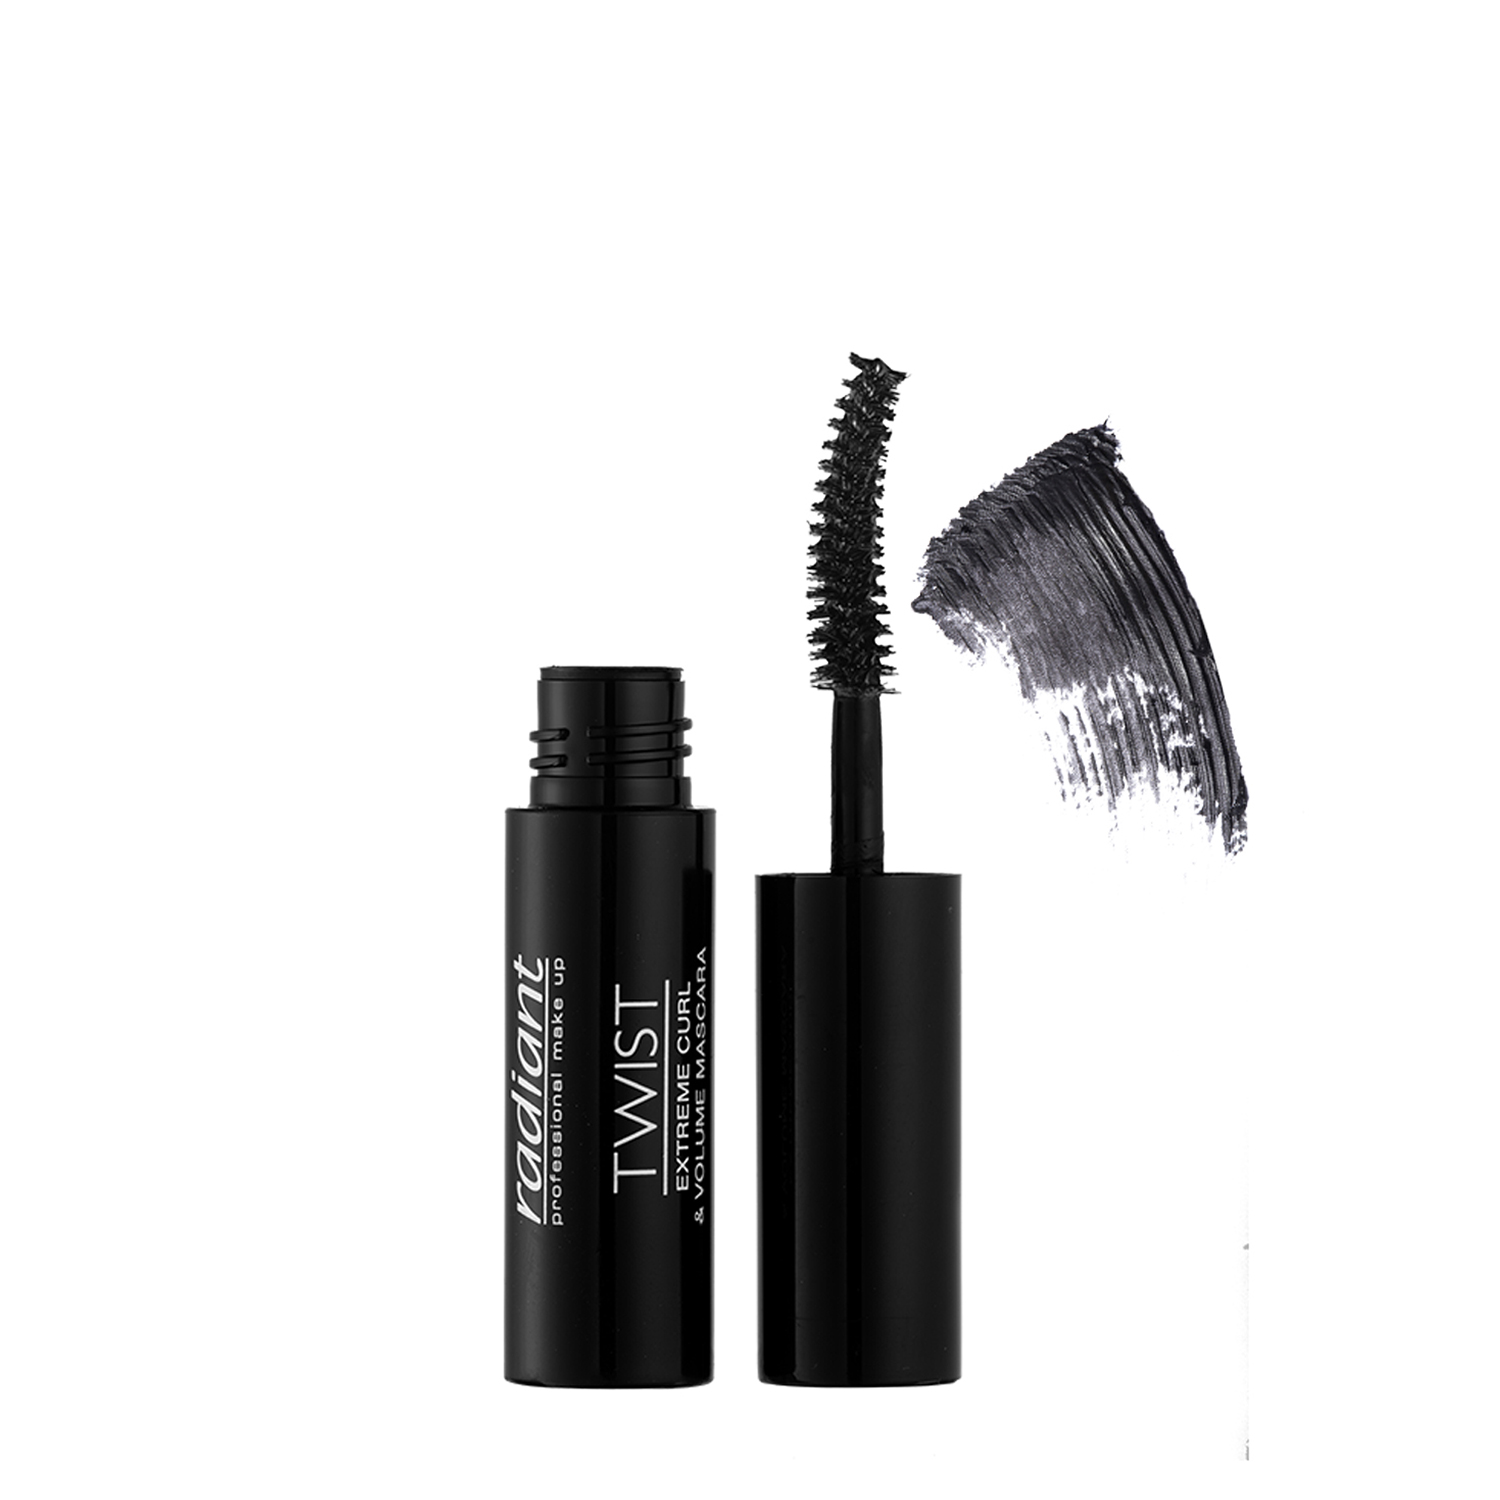 TWIST EXTREME CURL & VOLUME MASCARA - TRAVEL SIZE